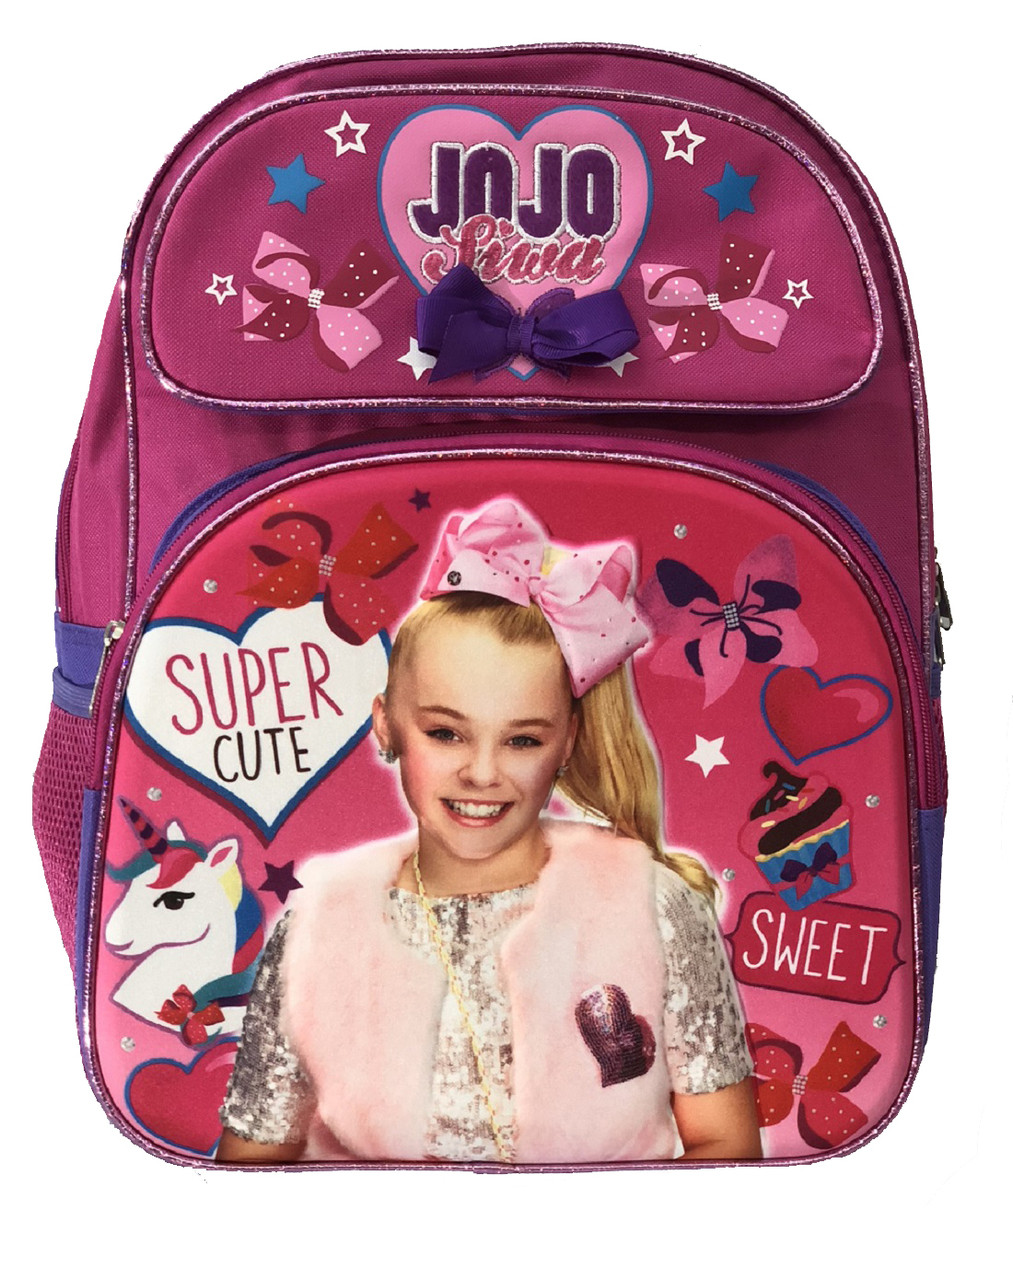 Backpack - JOJO Siwa - Large 16 Inch - Pink - 3D